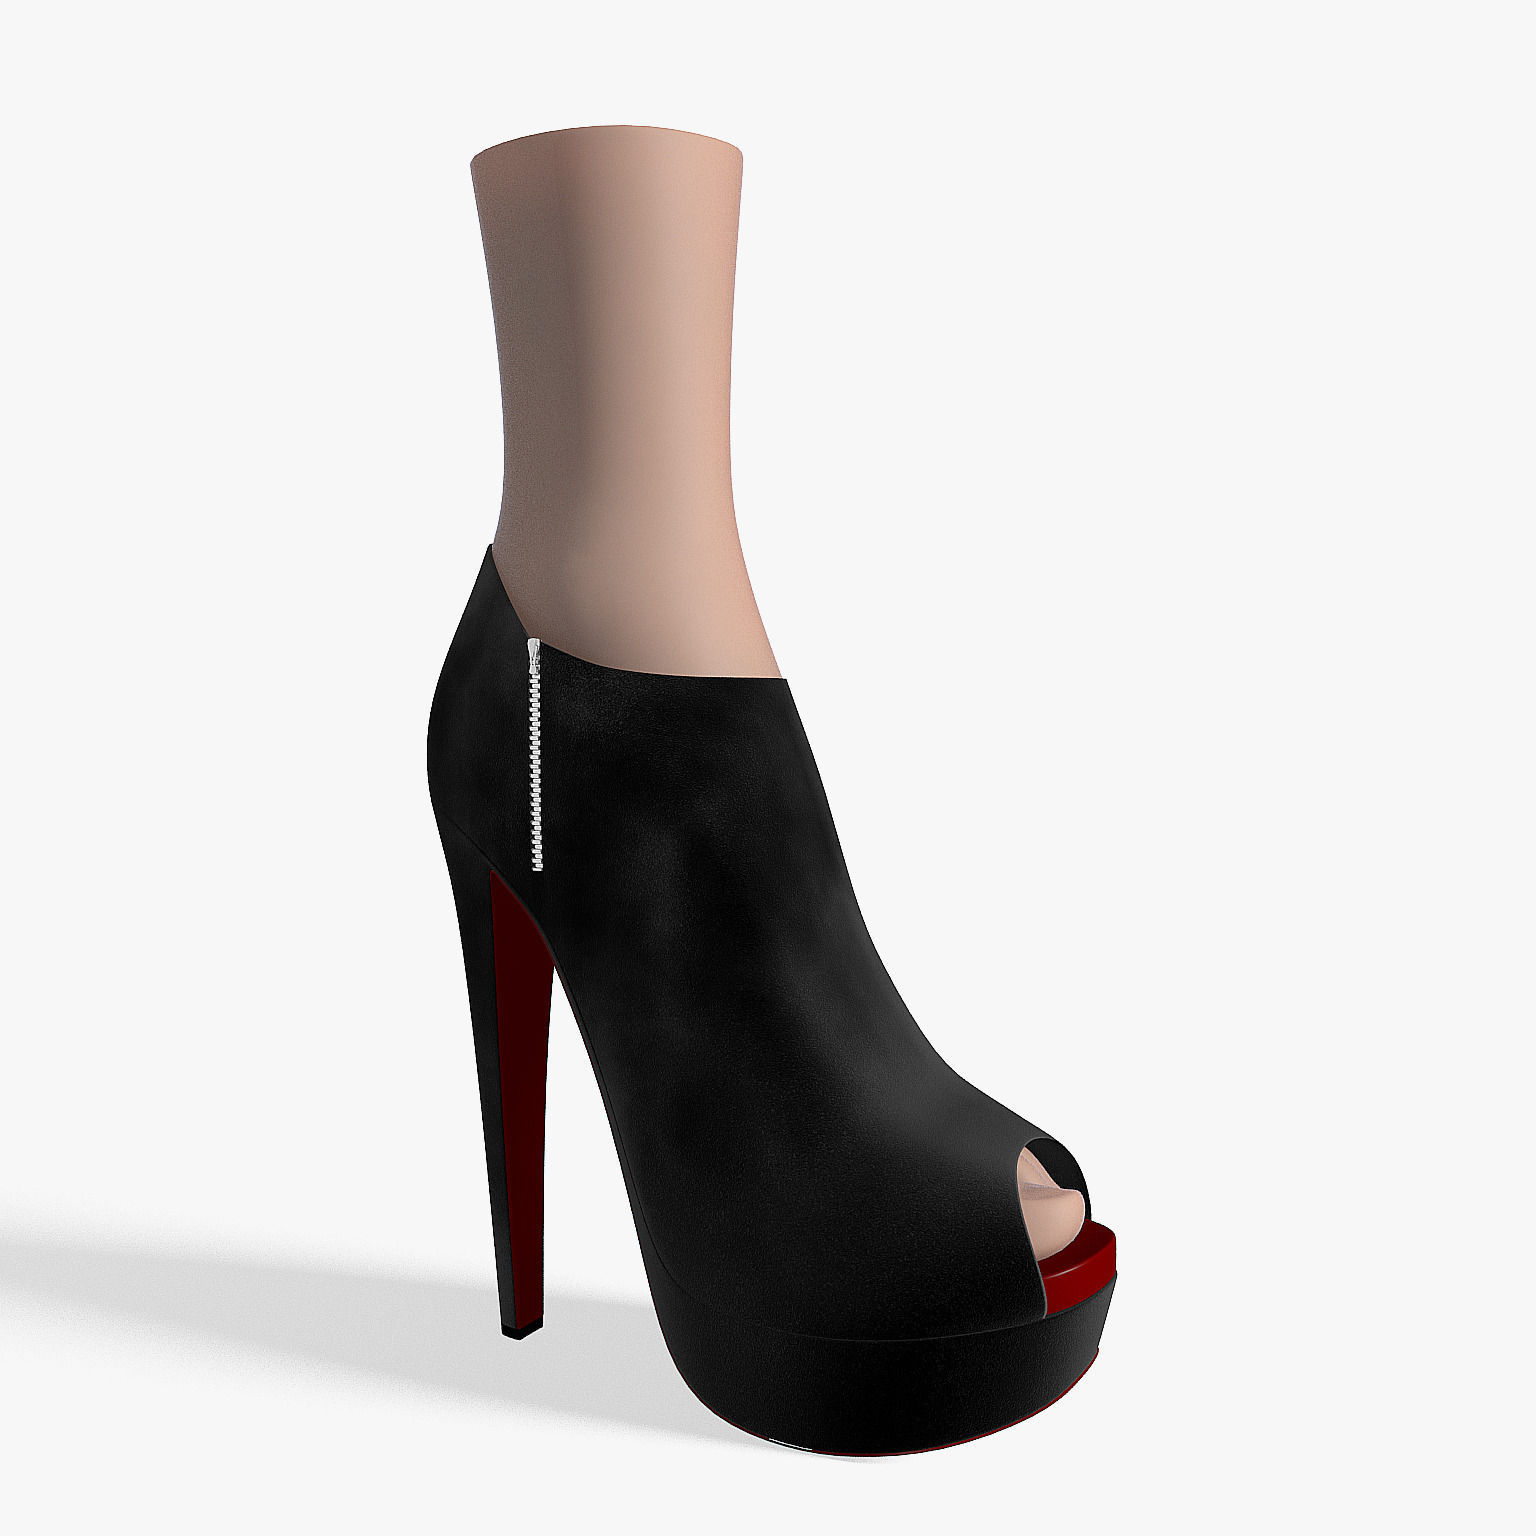 Ankle boots suede 3d model max obj 3ds fbx for New model boot